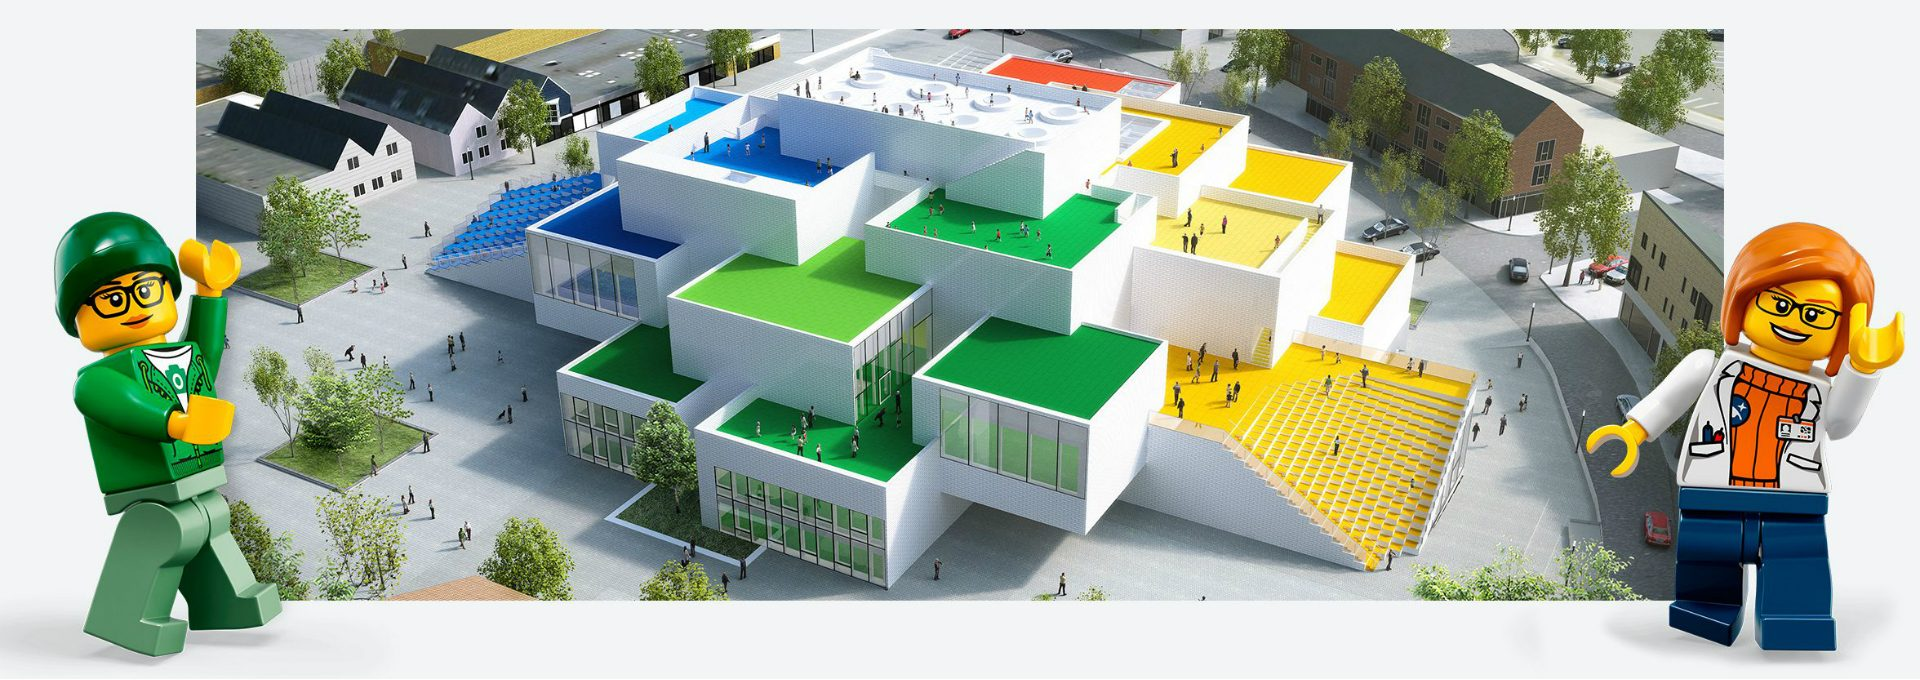 Bjarke Ingels Group And LEGO Present The 12,000 M² LEGO House